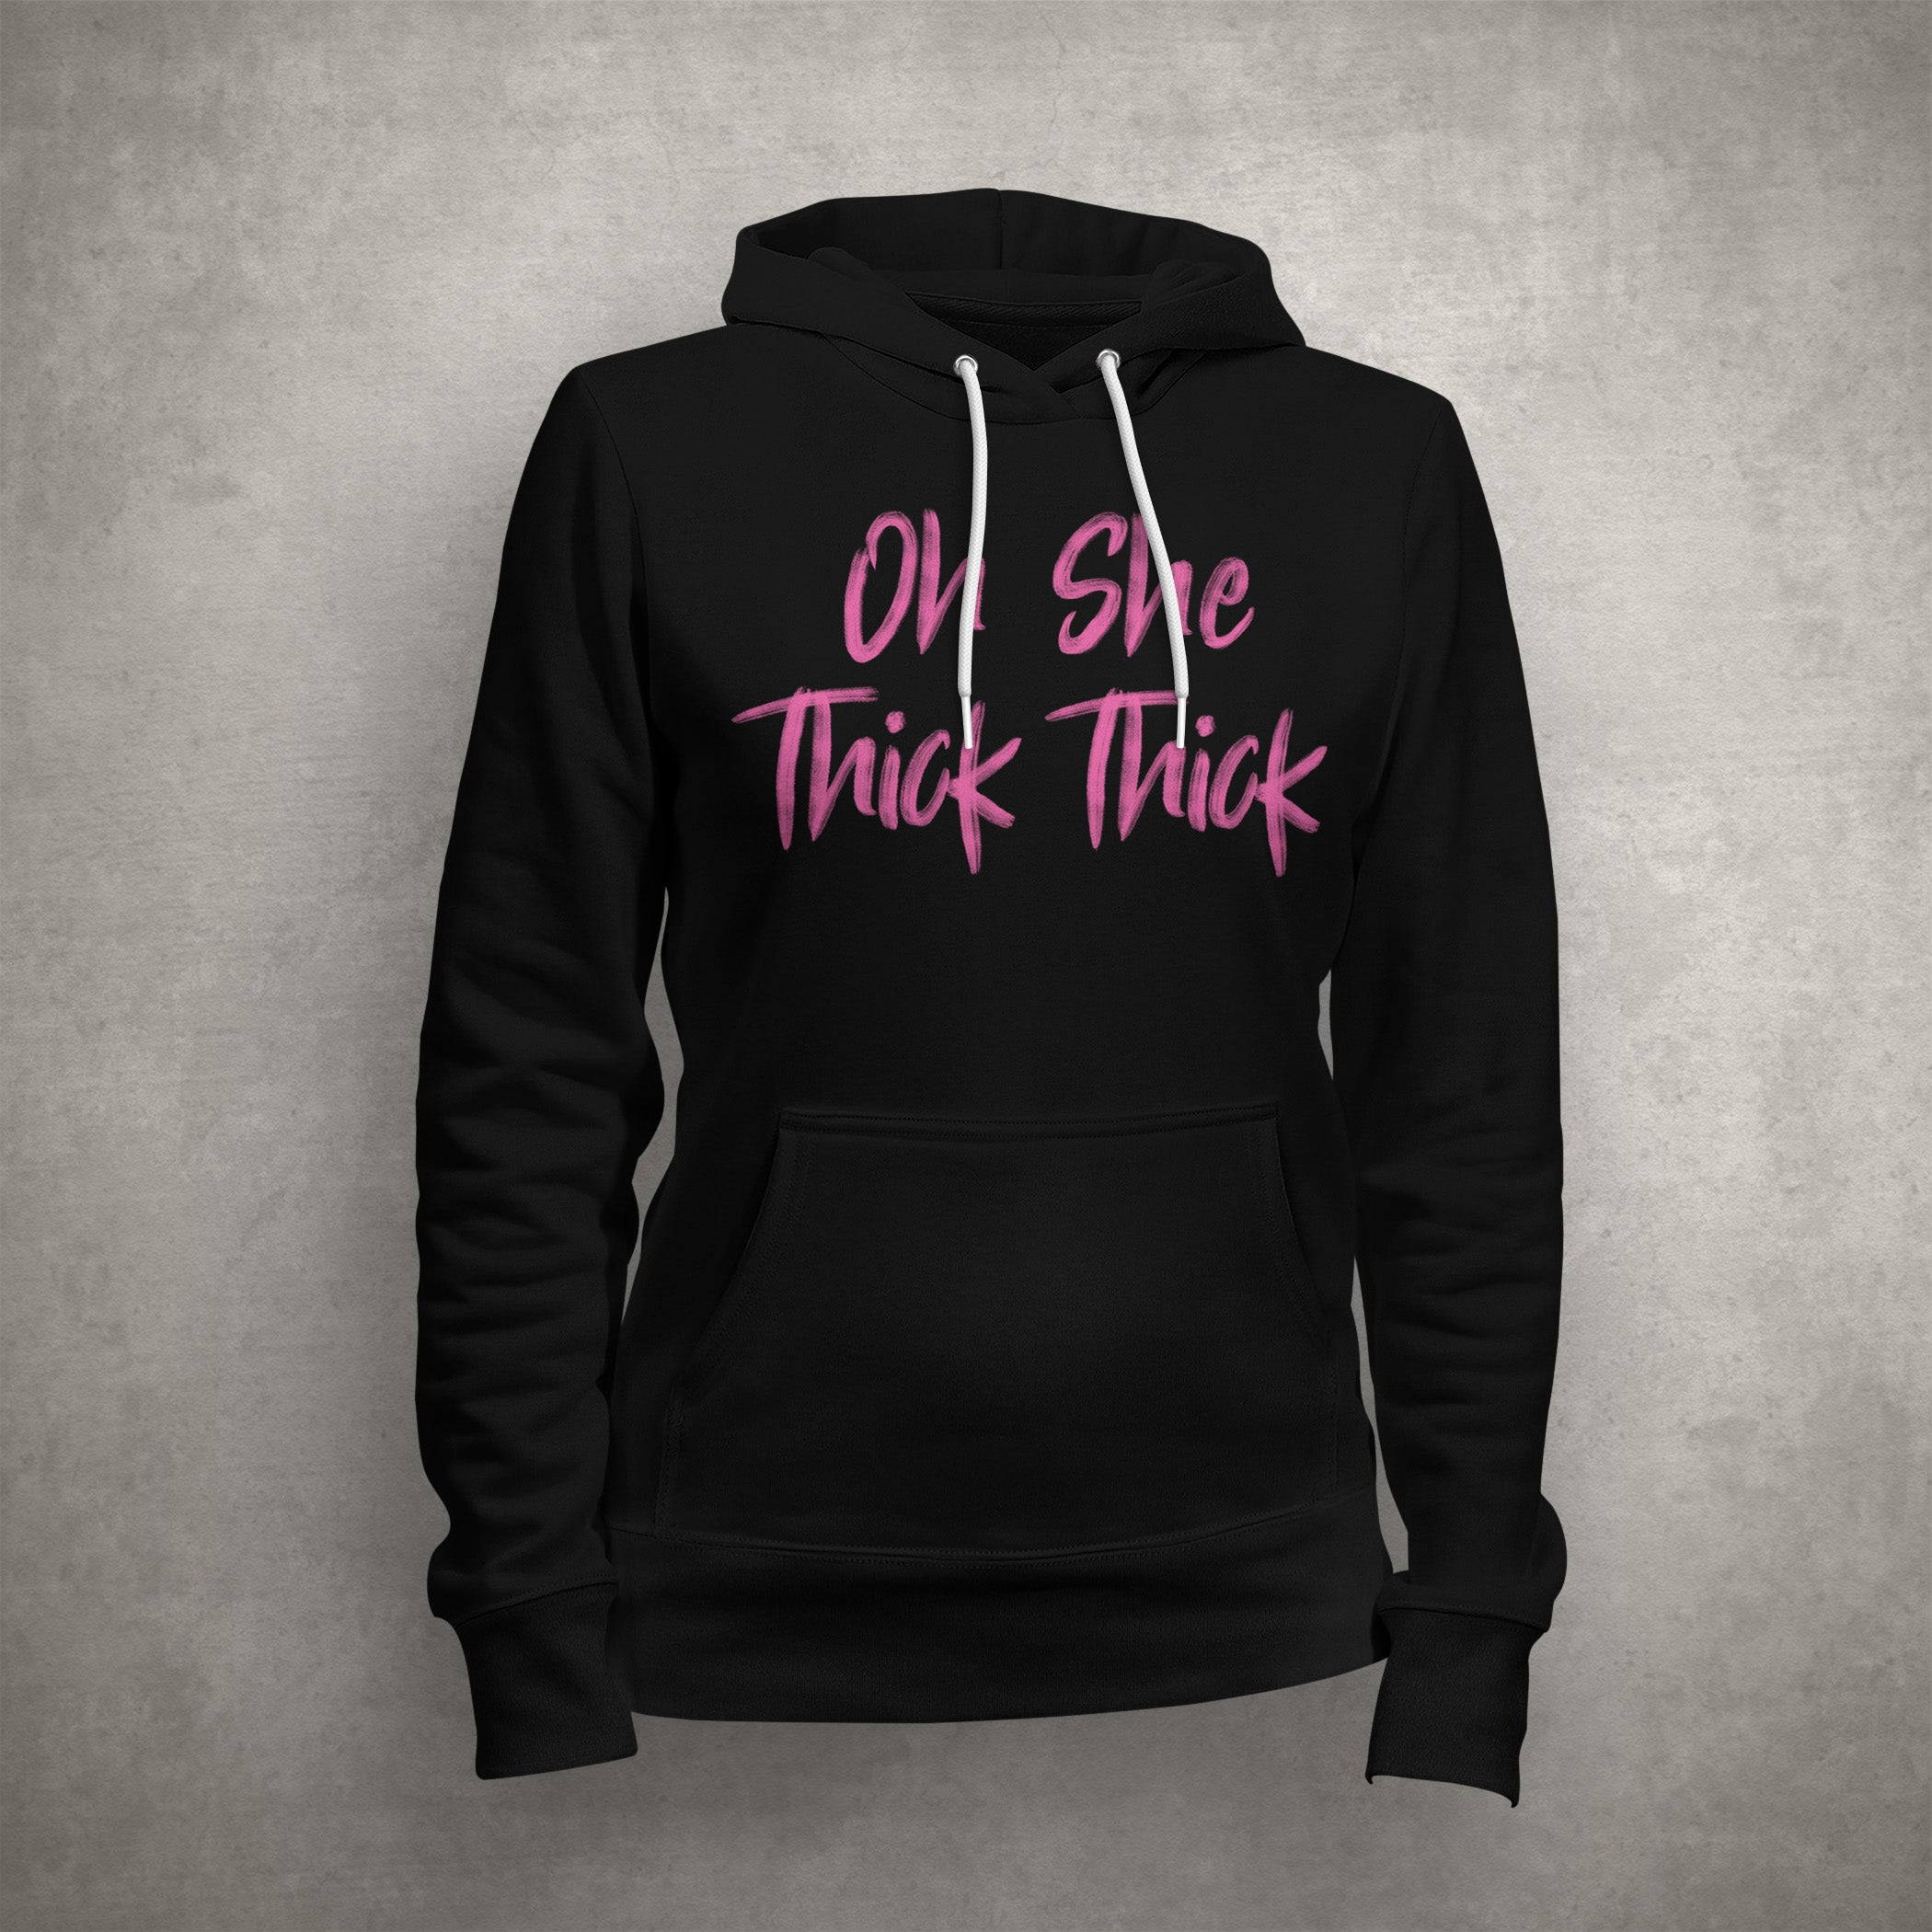 Thick Thick Unisex Hoodie